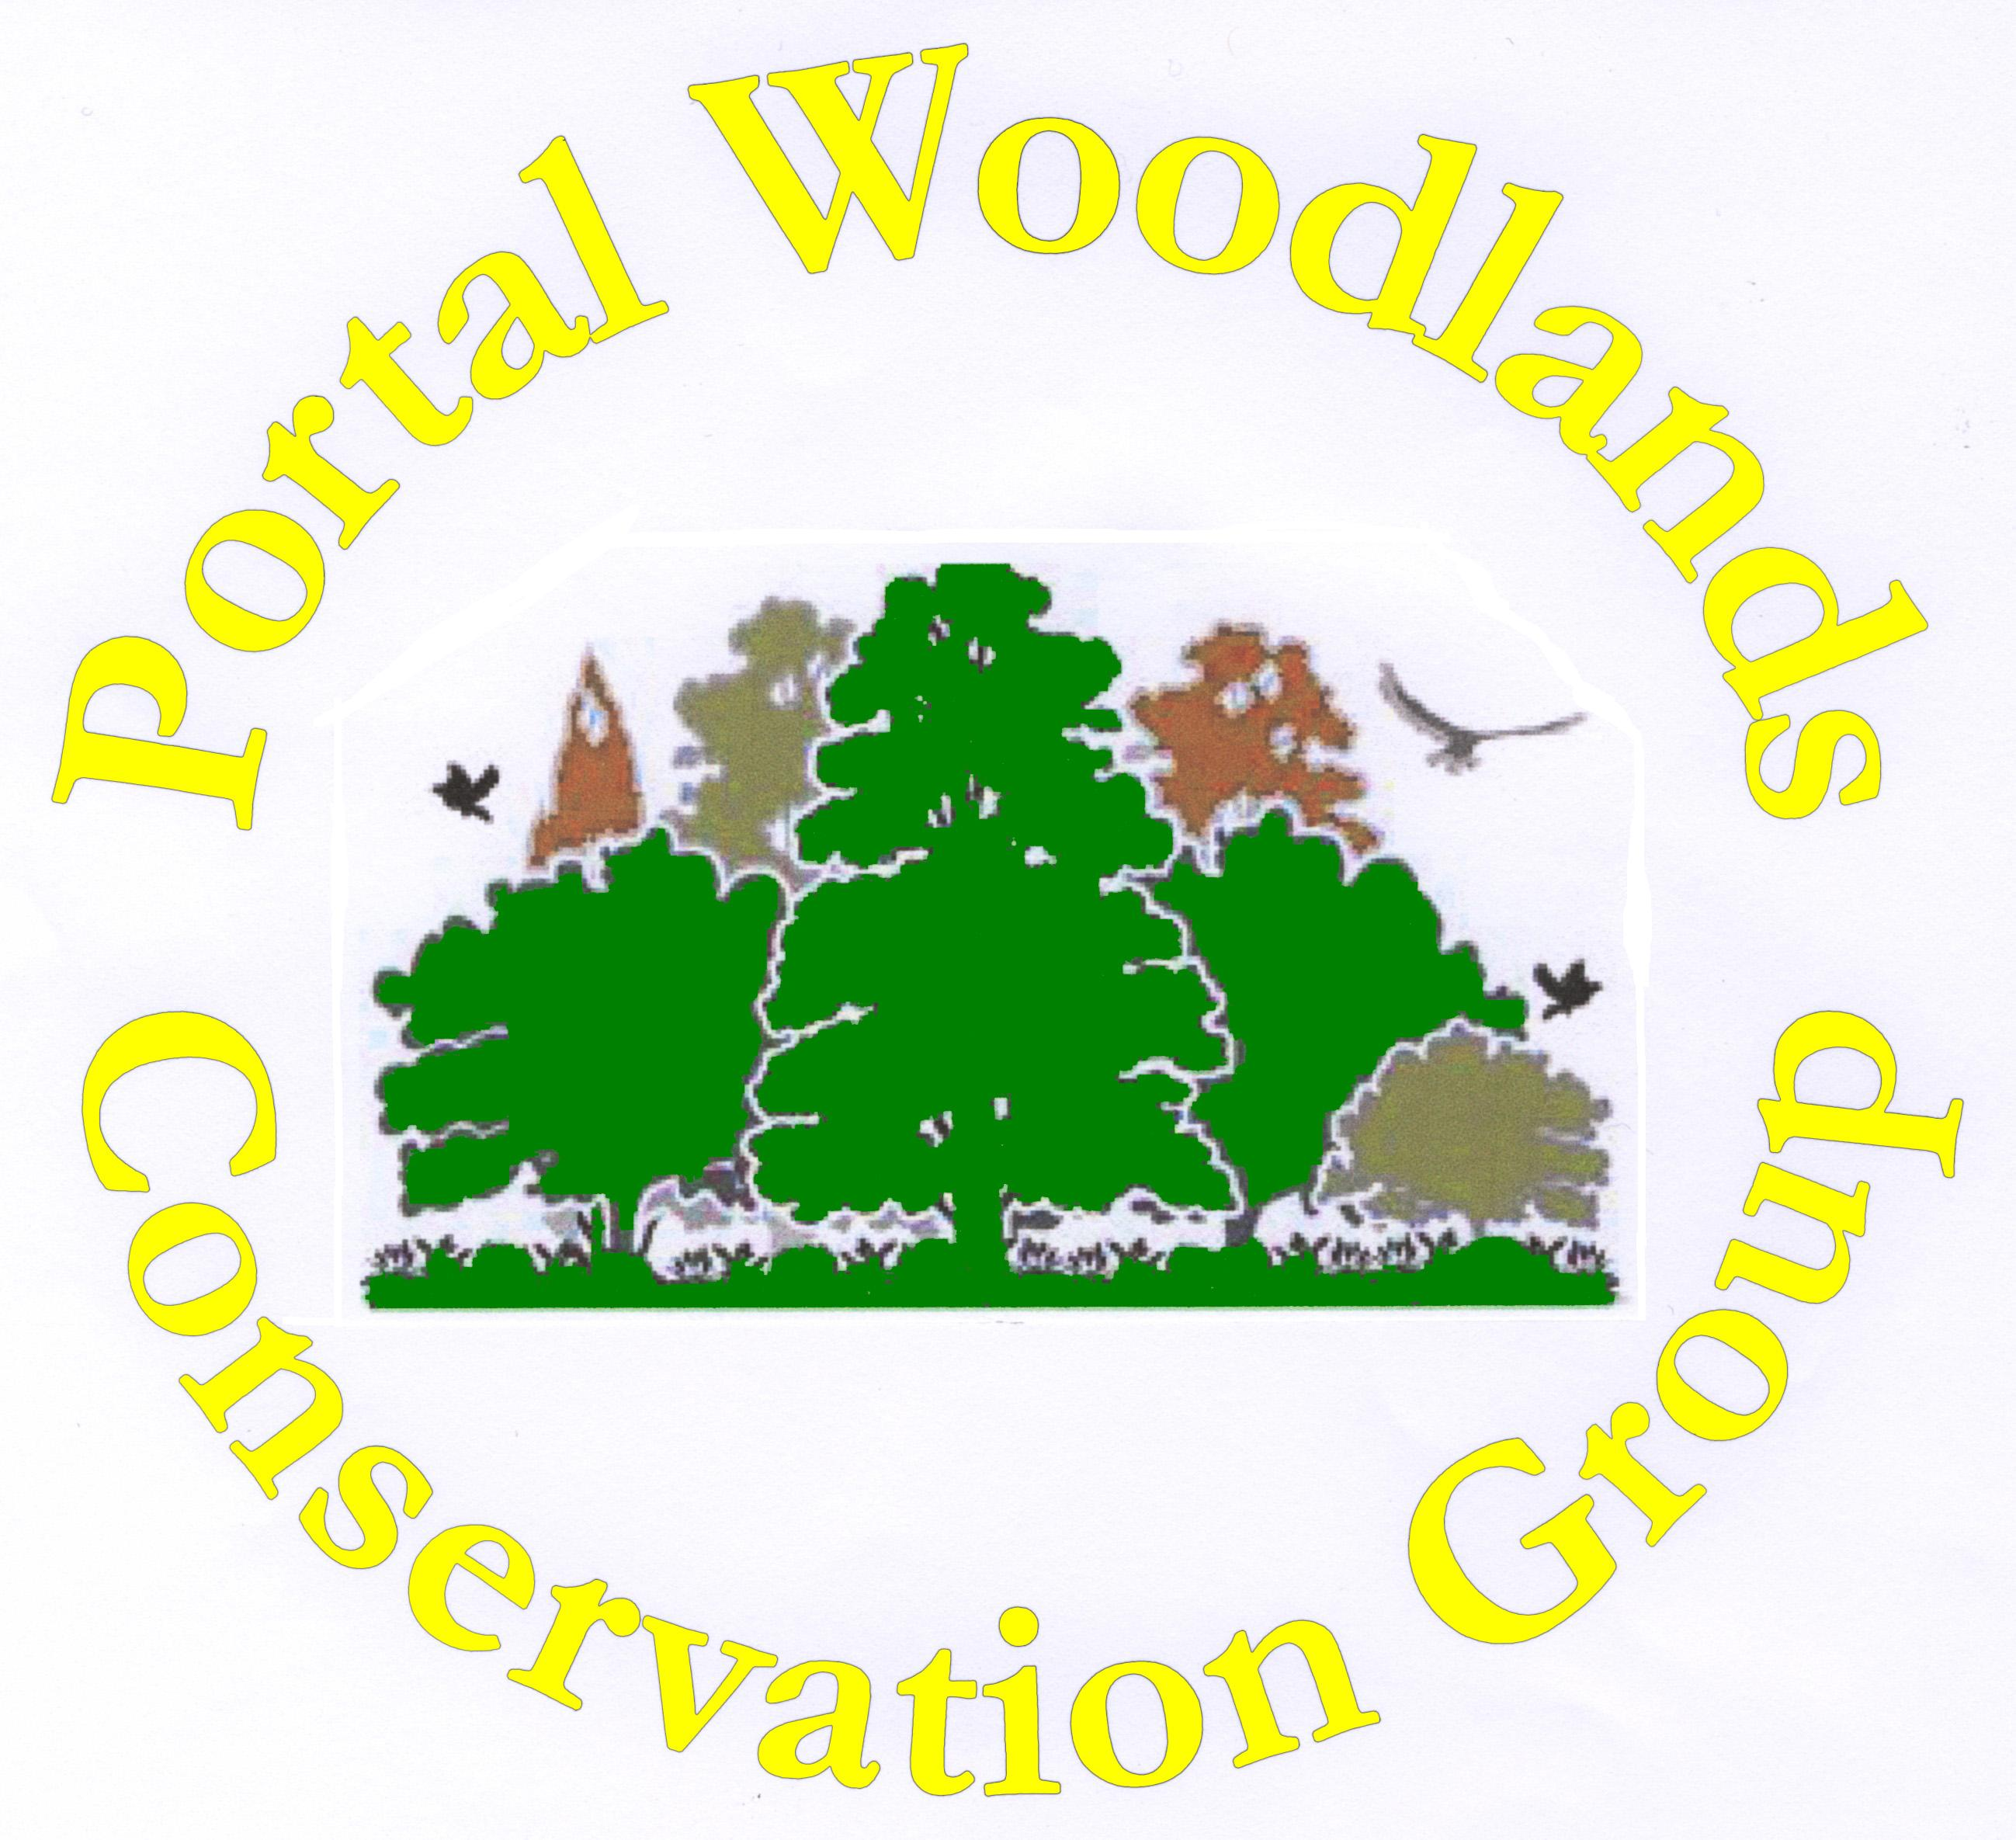 Portal Woodlands Conservation Group